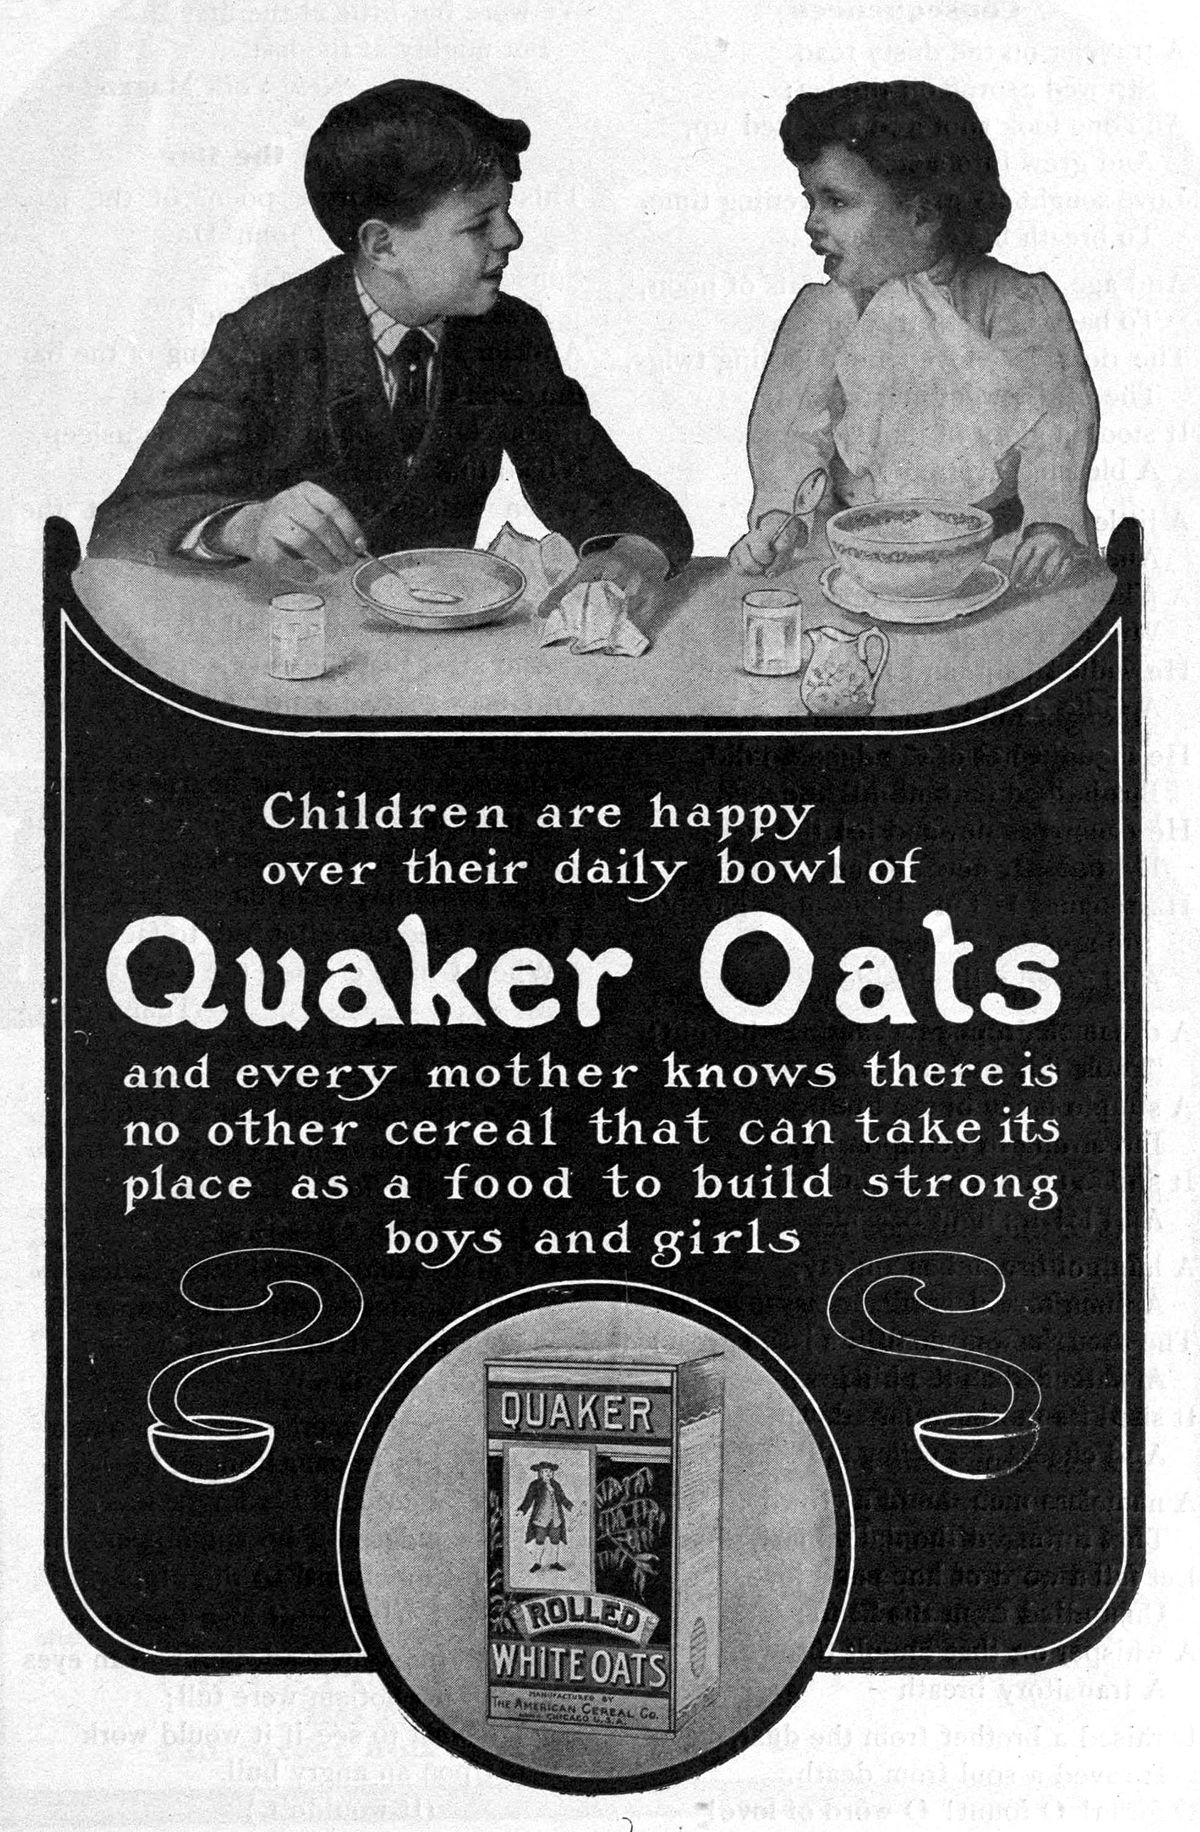 a history and an analysis of the quaker oats company History of quaker oats this article may require cleanup to meet wikipedia's quality standards 1901 saw the formation of the quaker oats company in new jersey.